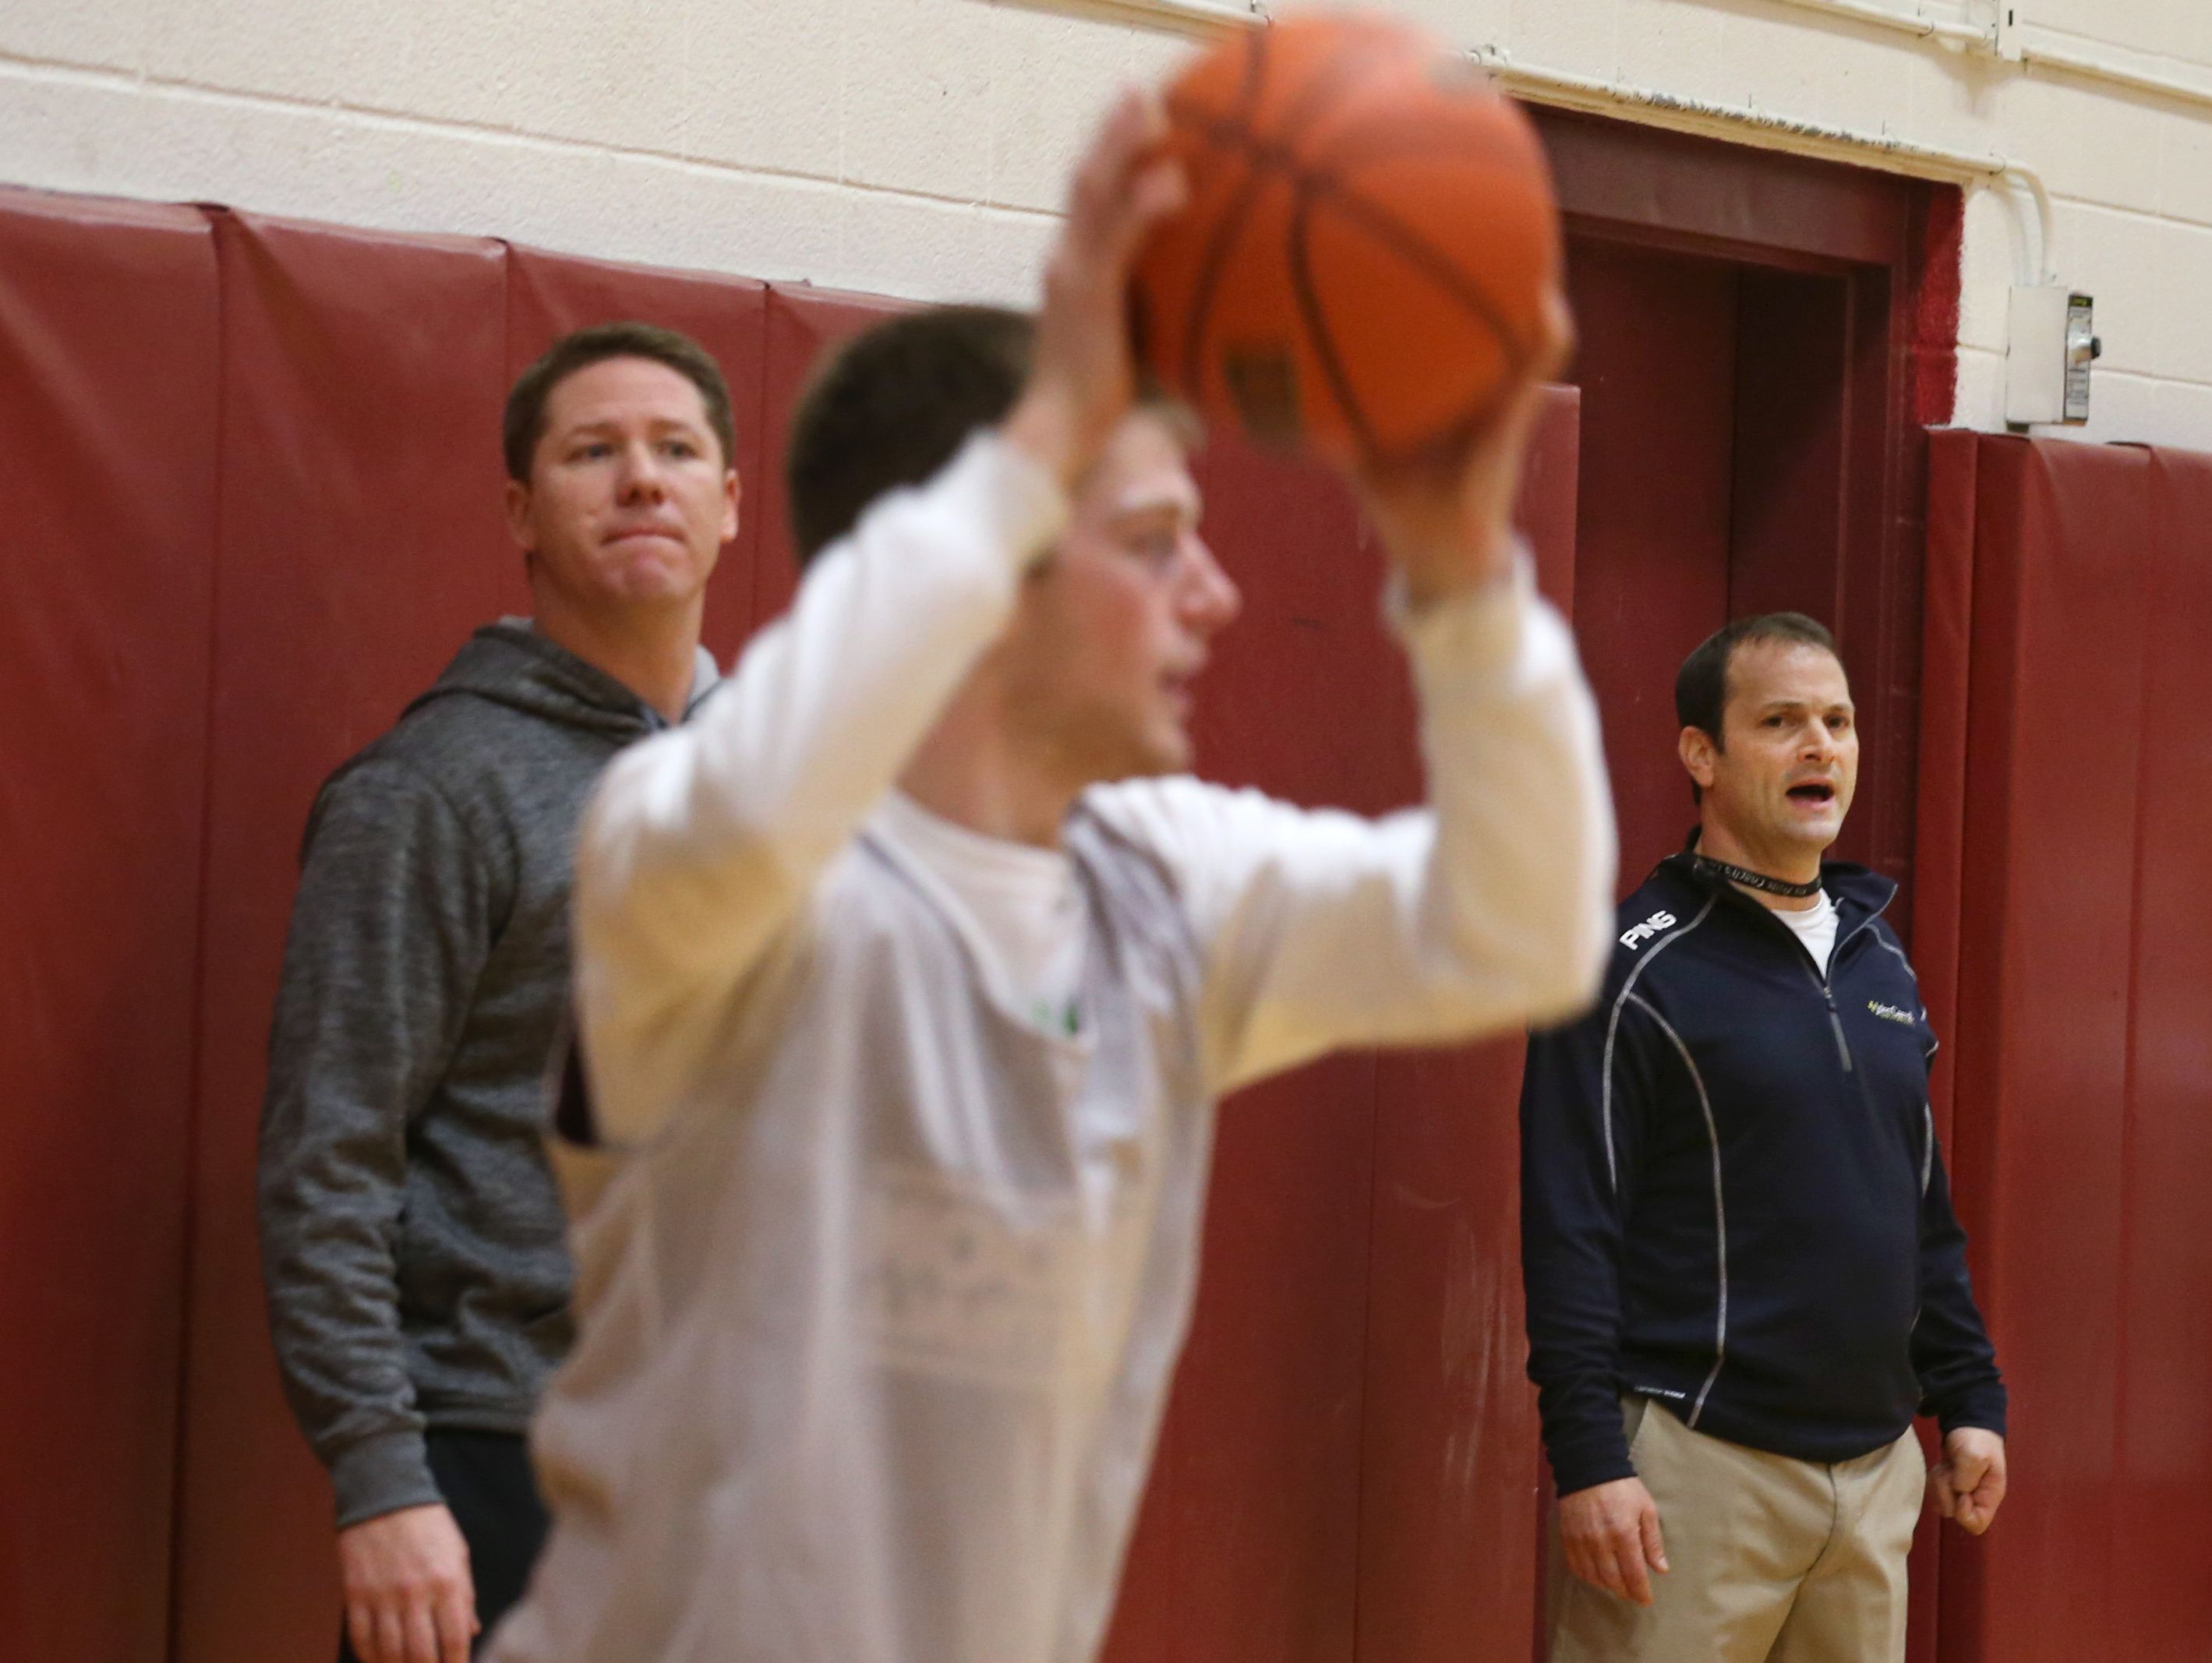 Jeff Amoroso, Pittsford Mendon boys varsity basketball assistant coach, right, works side-by-side with head coach Bob Nally, left, as they run in-bounds drills during practice Tuesday, Jan. 19, 2016 at the high school.